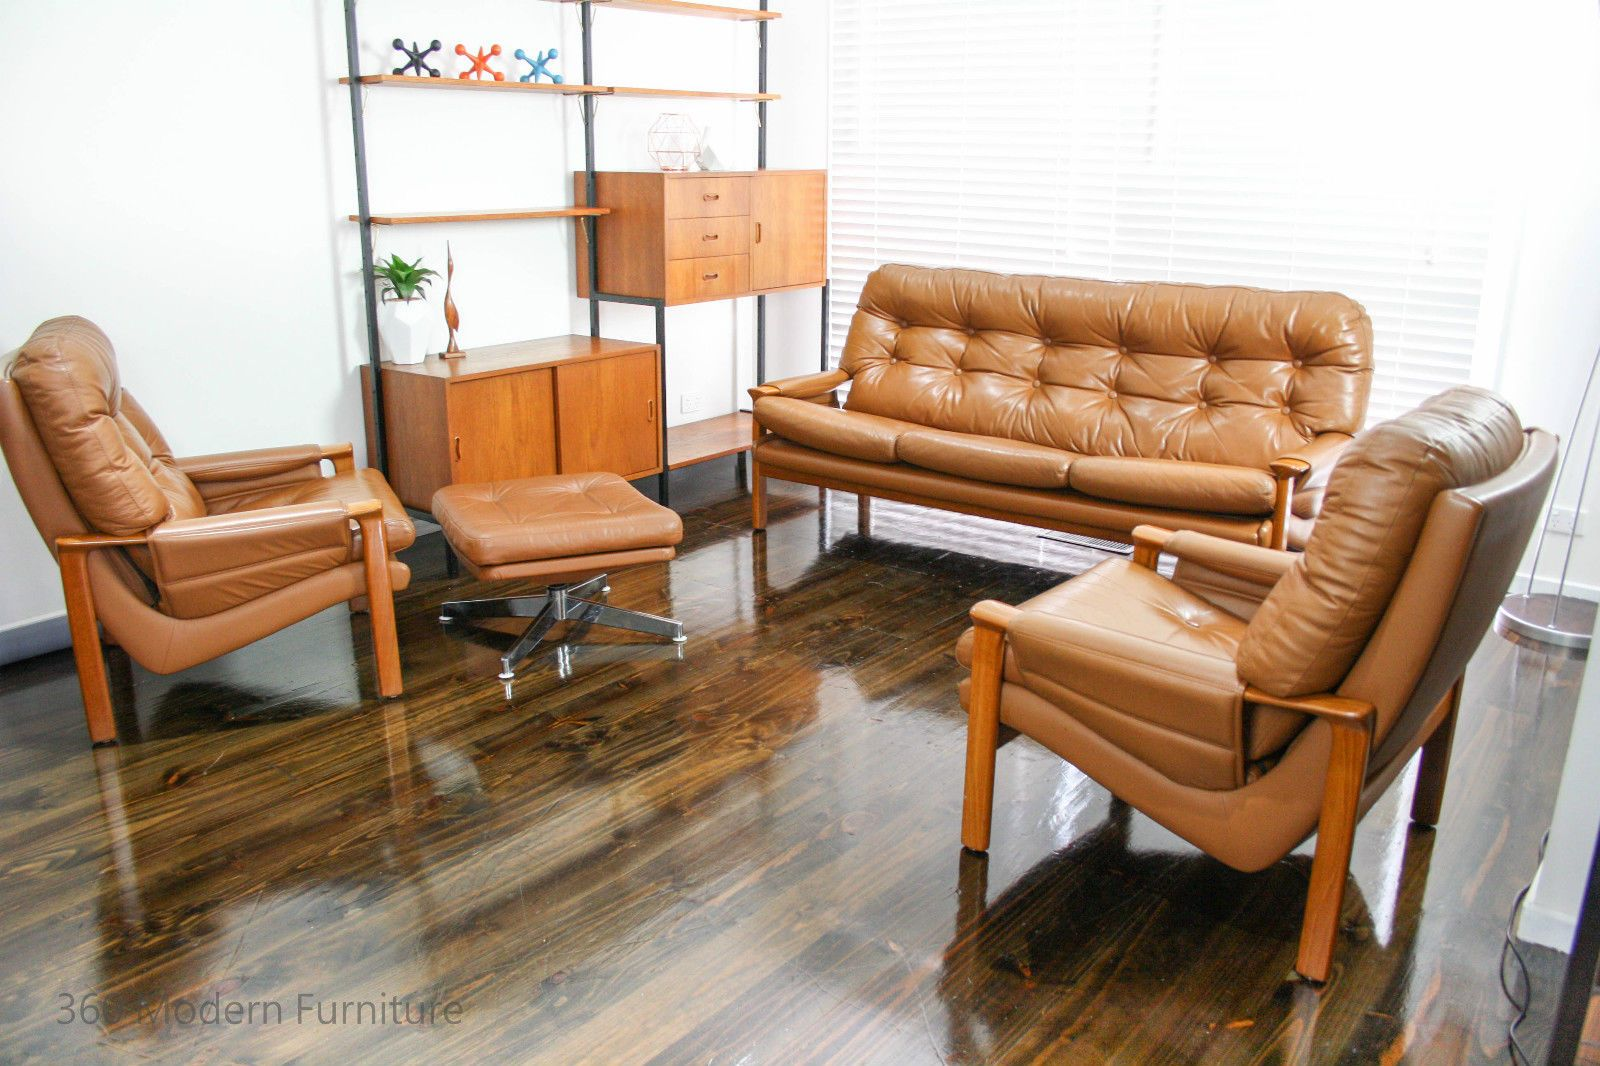 Peachy Tessa Leather 3 Seater 2 Armchairs Retro Vintage Lounge Caraccident5 Cool Chair Designs And Ideas Caraccident5Info